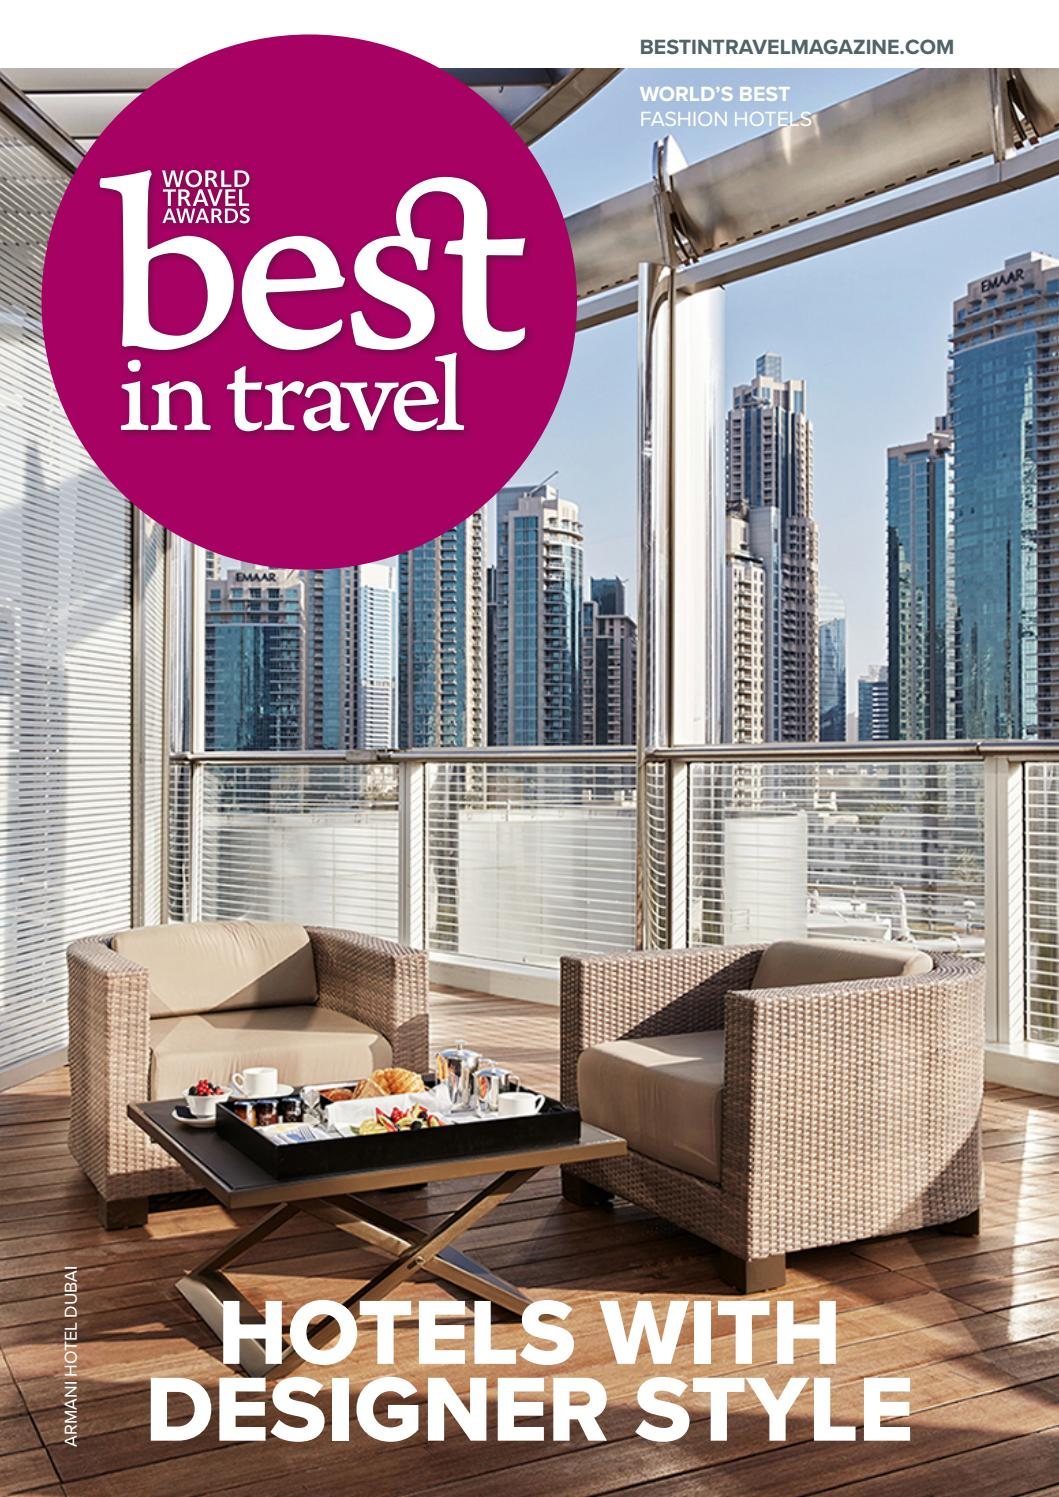 ffa5905d Best In Travel Magazine Issue 67 // 2018 // Discover Hotels with designer  style by Best in Travel Magazine - issuu